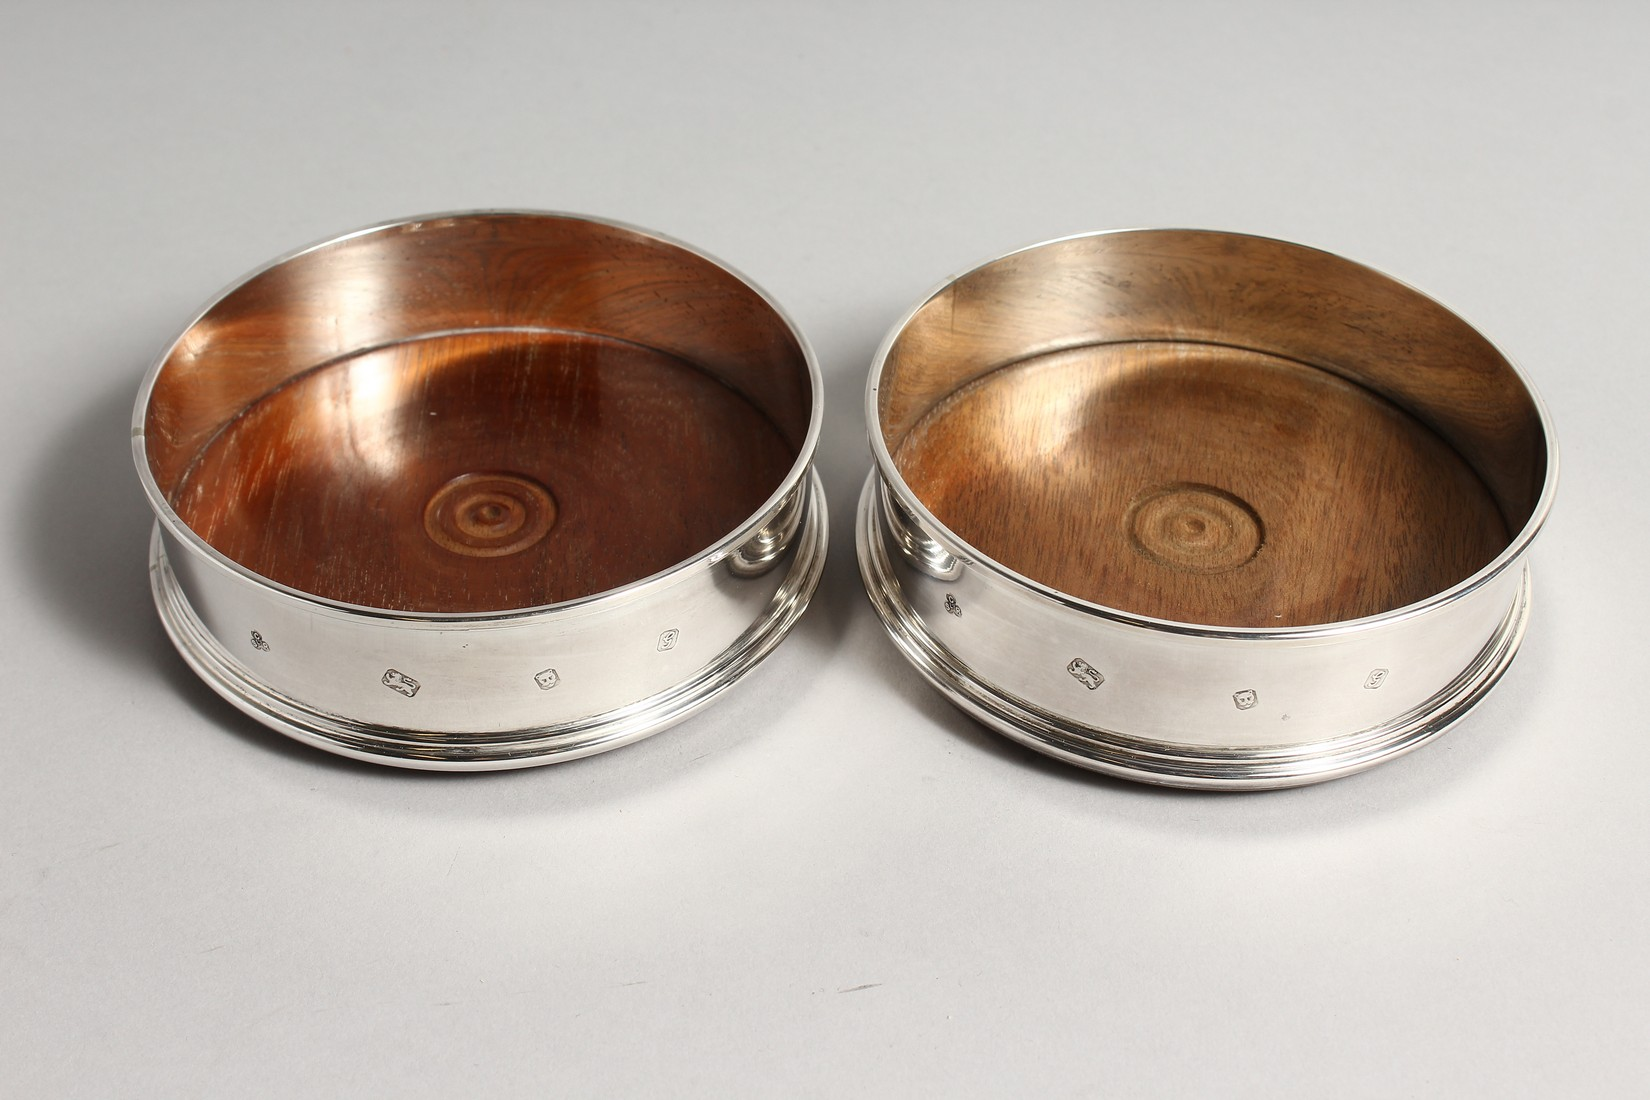 A PAIR OF MODERN PLAIN SILVER WINE WINE COASTERS wit turned wood bases 4.75diameter London 2003 - Image 2 of 6